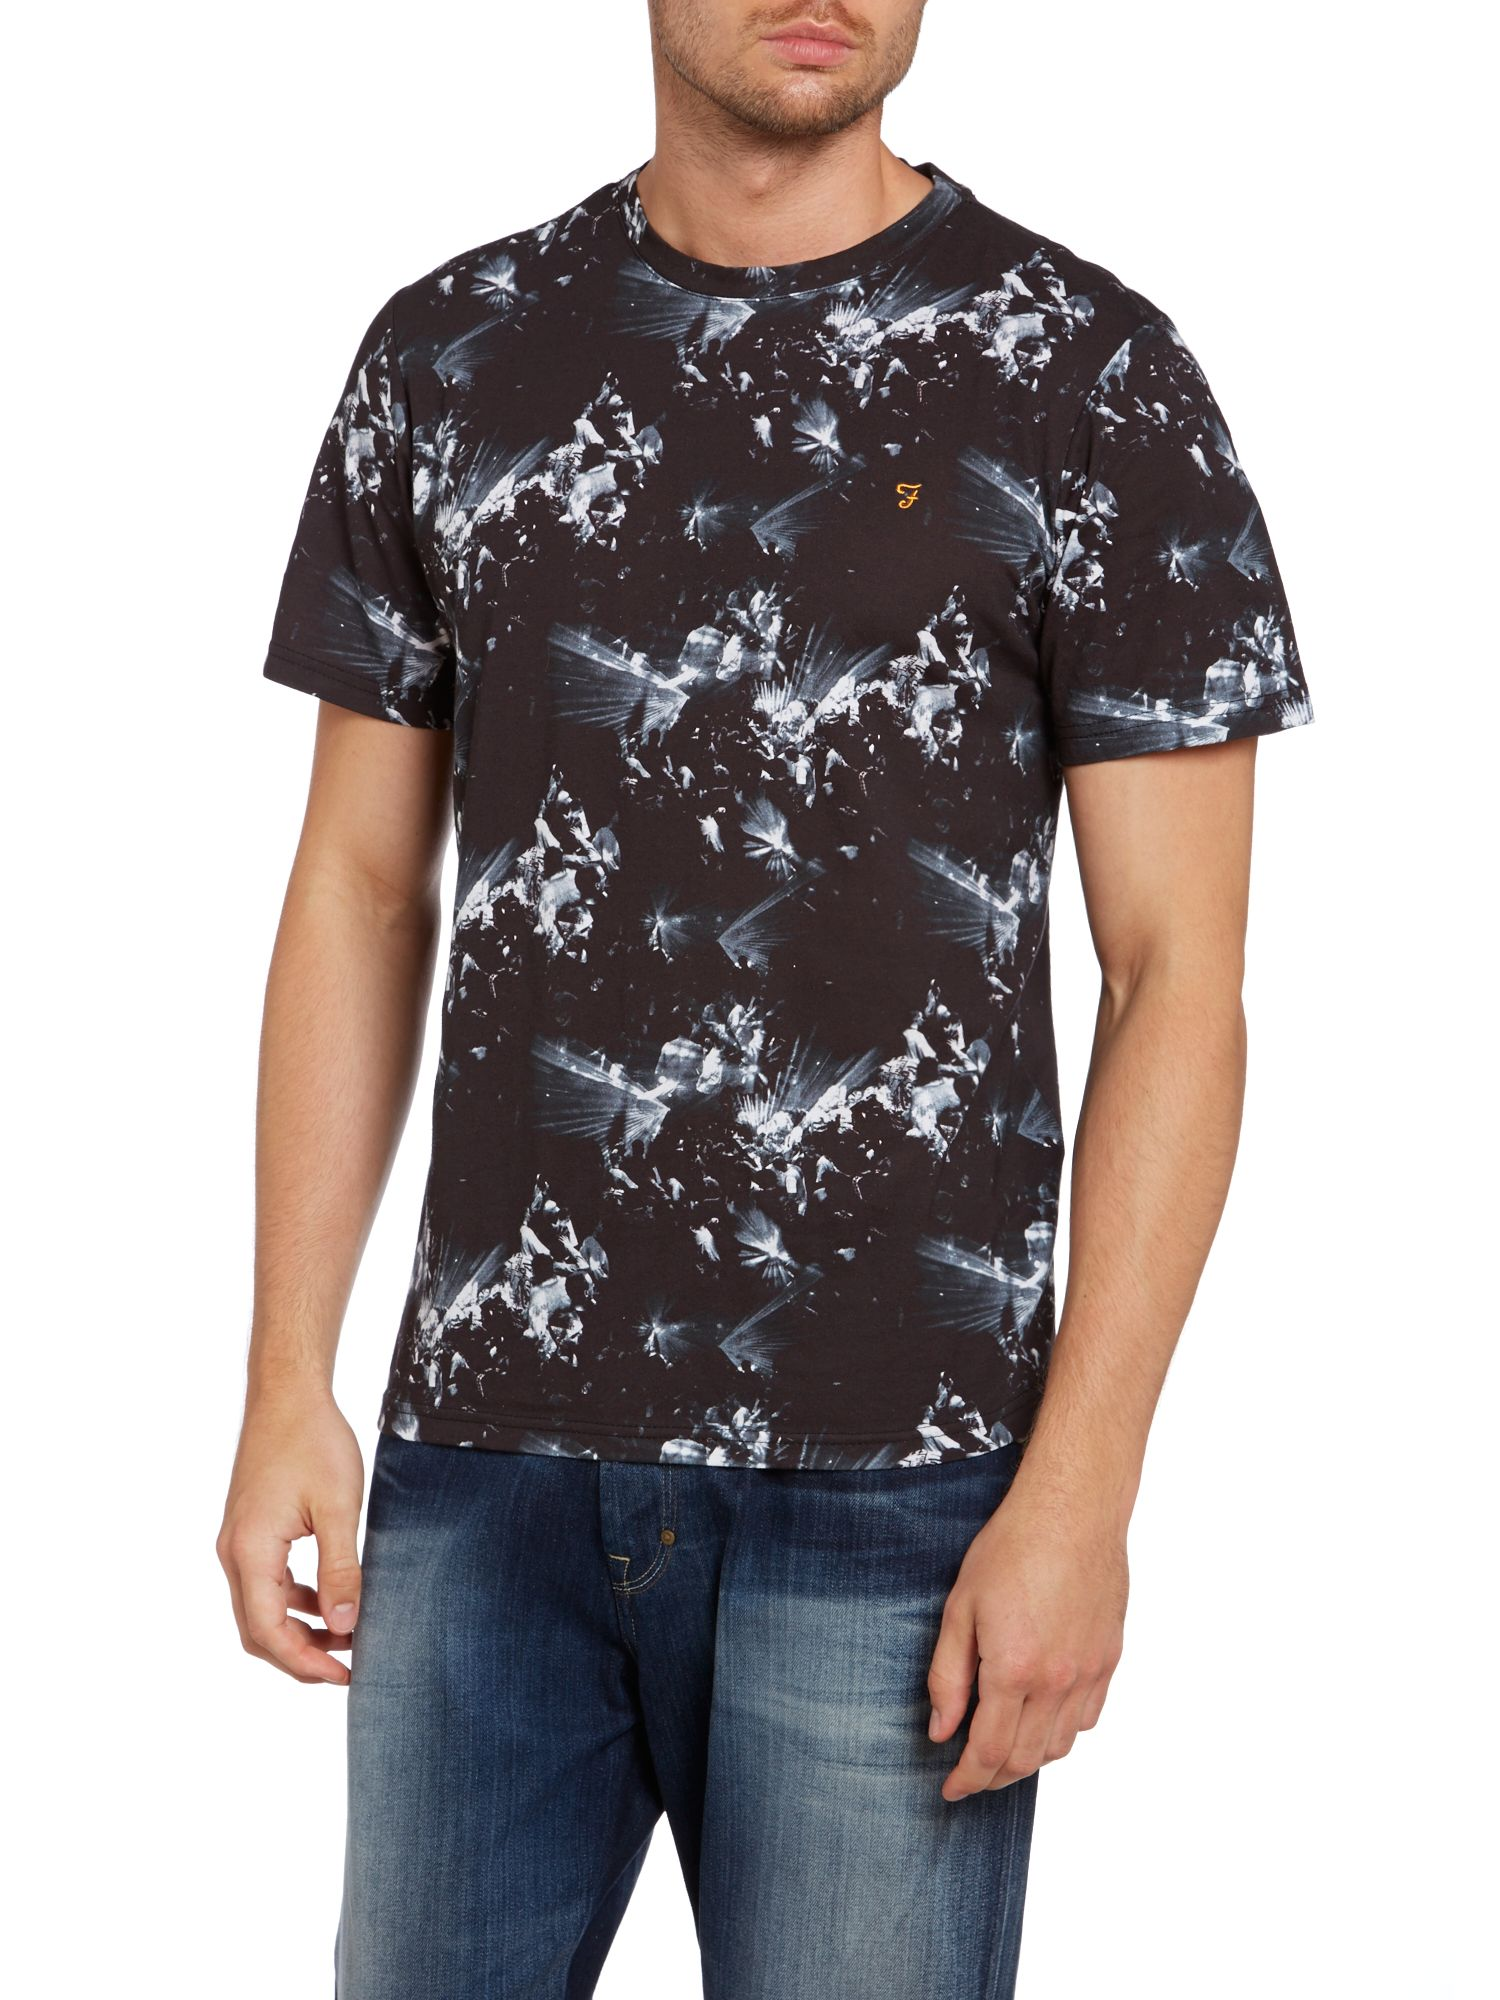 Gavin photo rave print t shirt